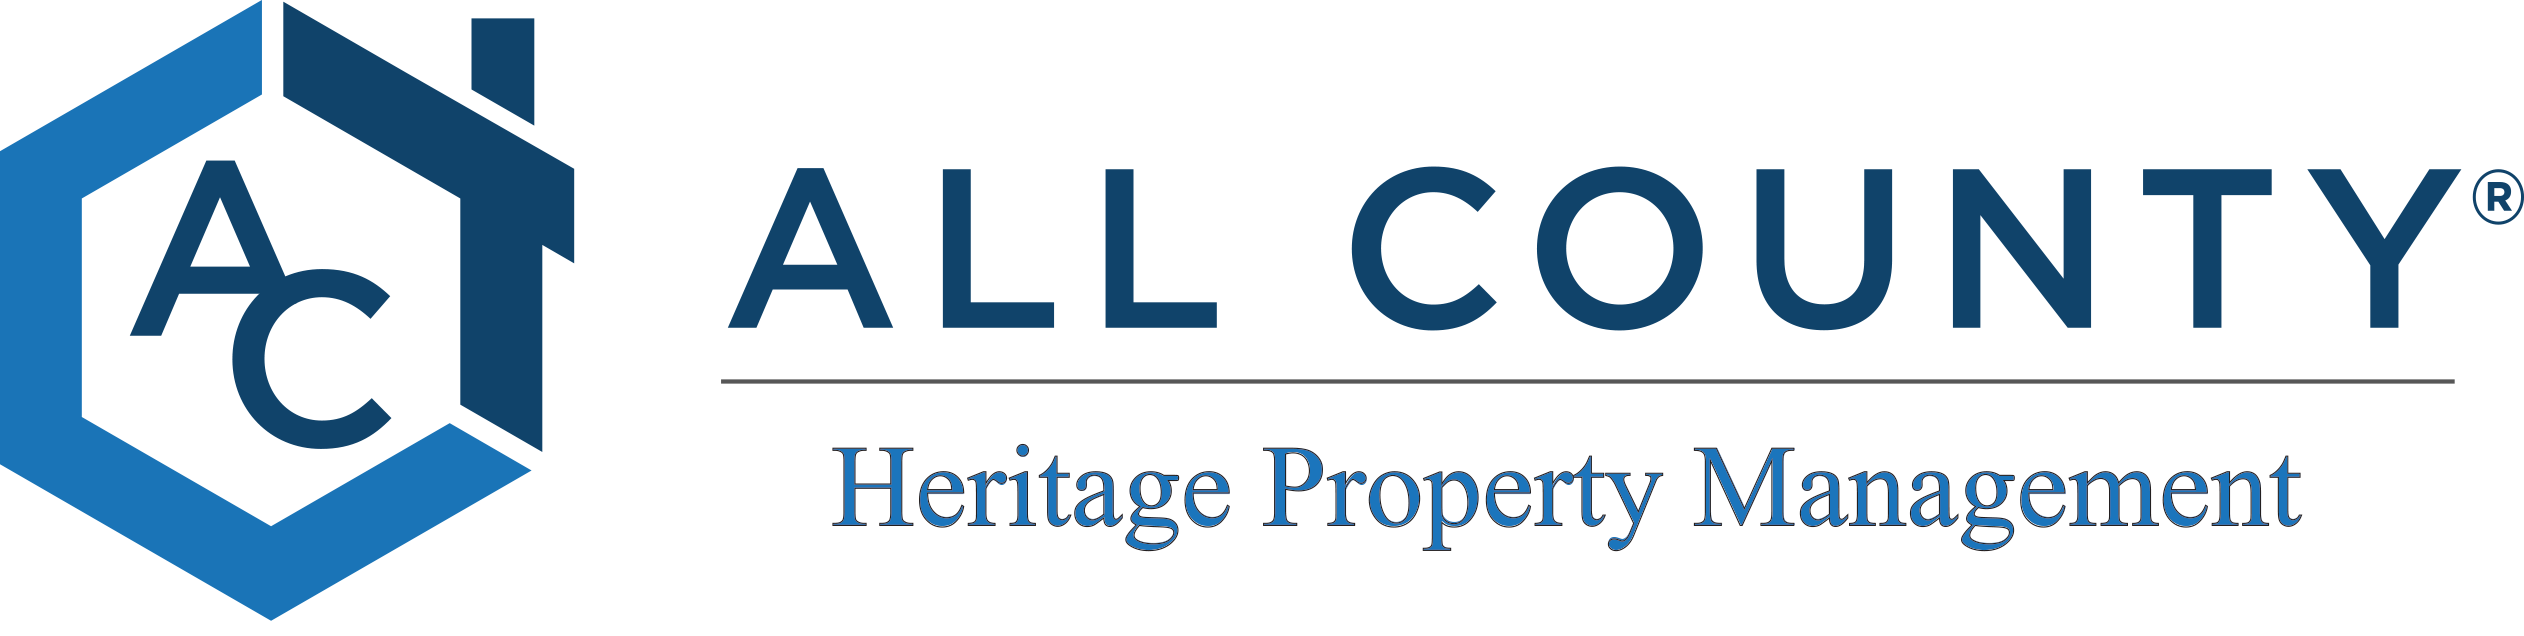 All County Heritage Property Management